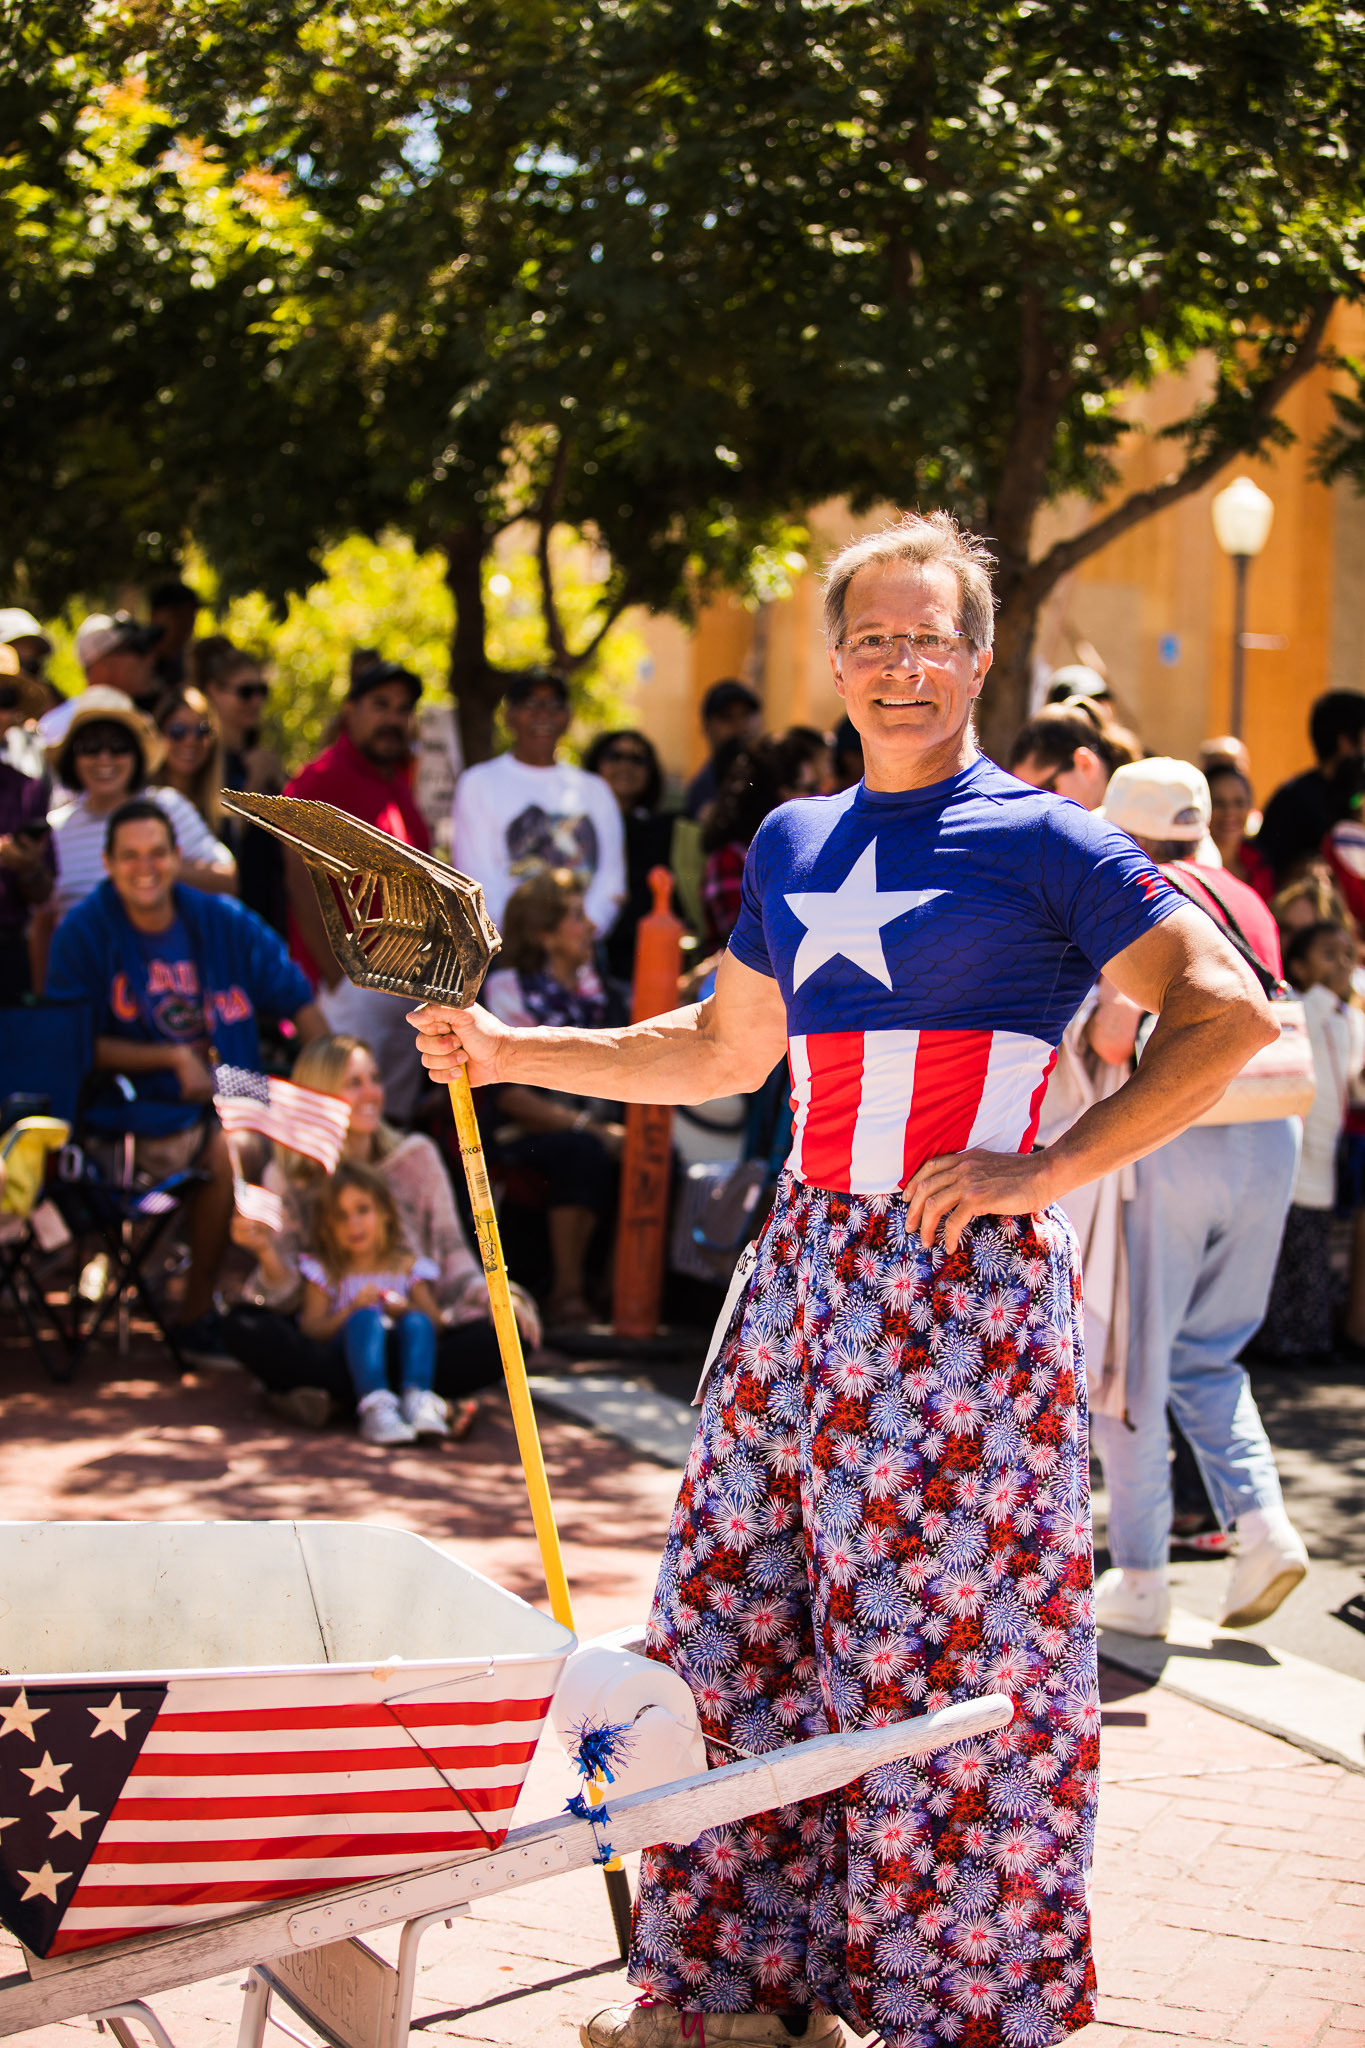 Archer_Inspired_Photography_Morgan_Hill_California_4th_of_july_parade-160.jpg